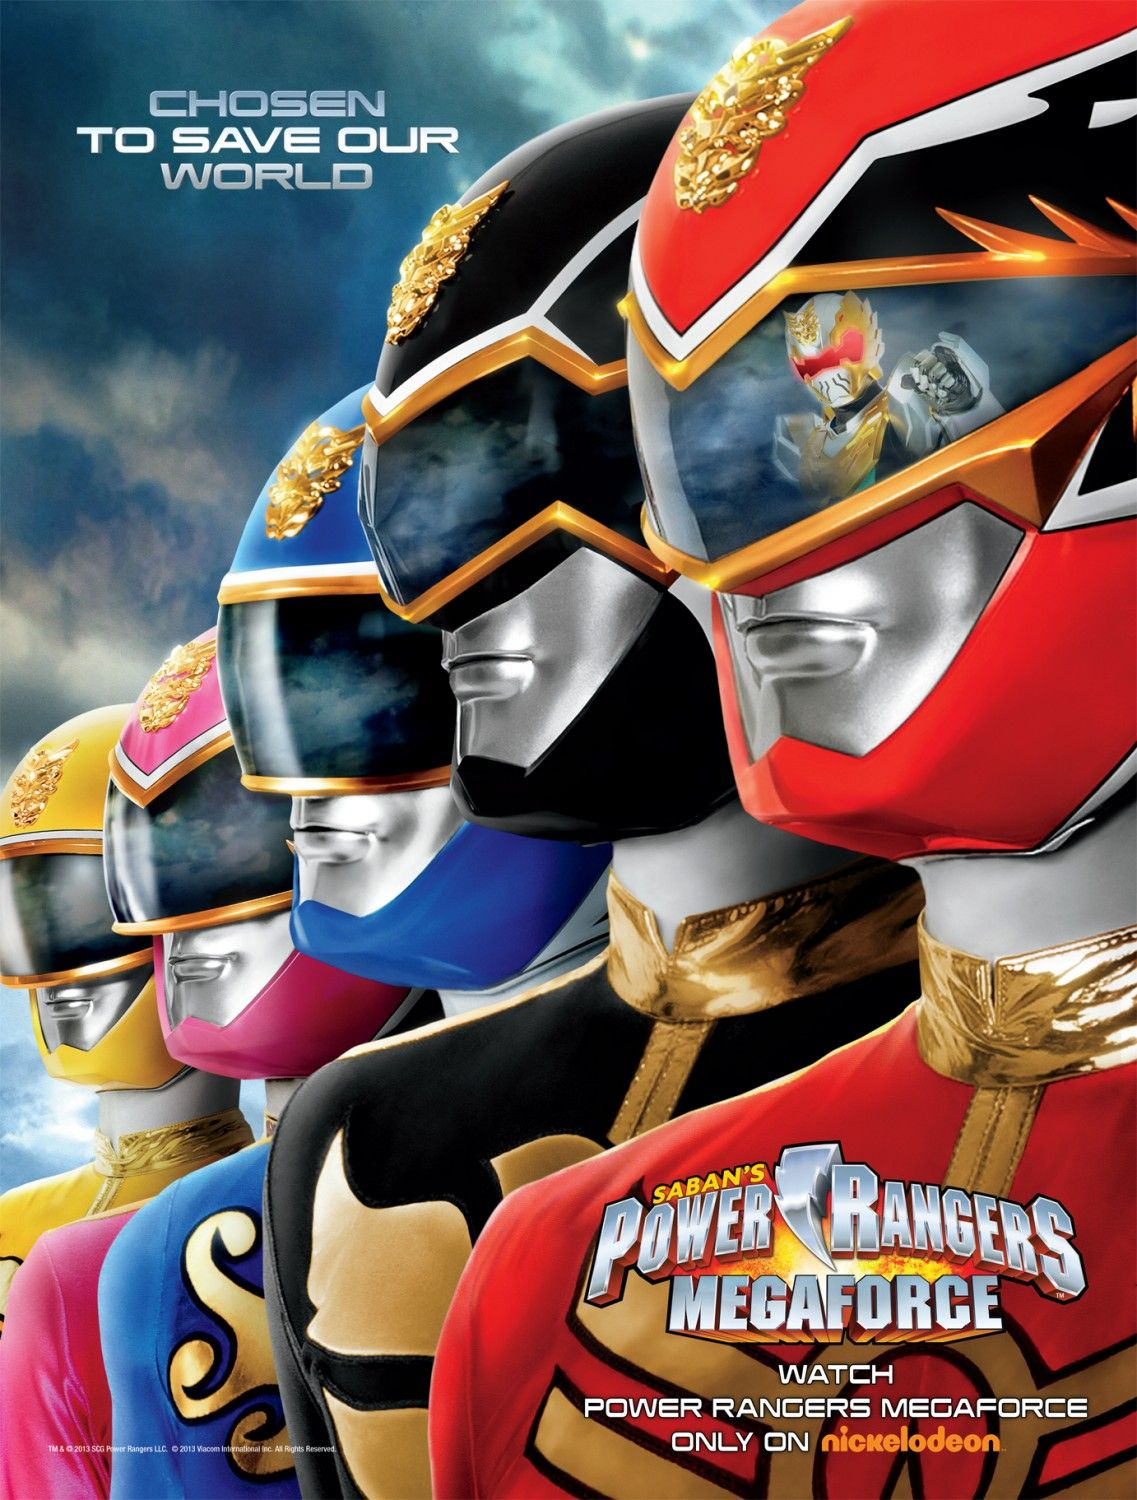 Return to the main poster page for Power Rangers Megaforce ...